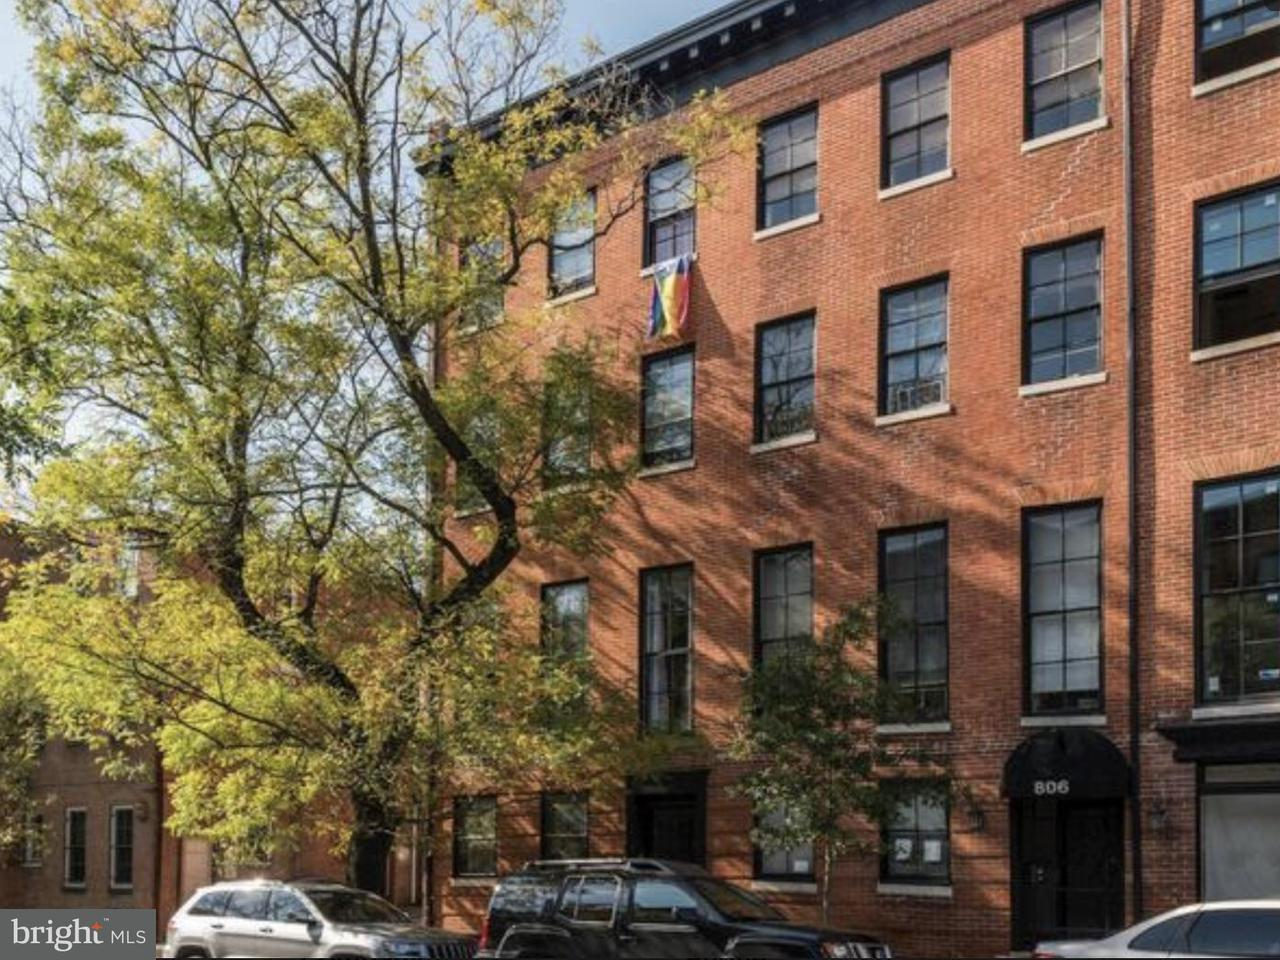 Other Residential for Rent at 804 Calvert St N #4 Baltimore, Maryland 21202 United States